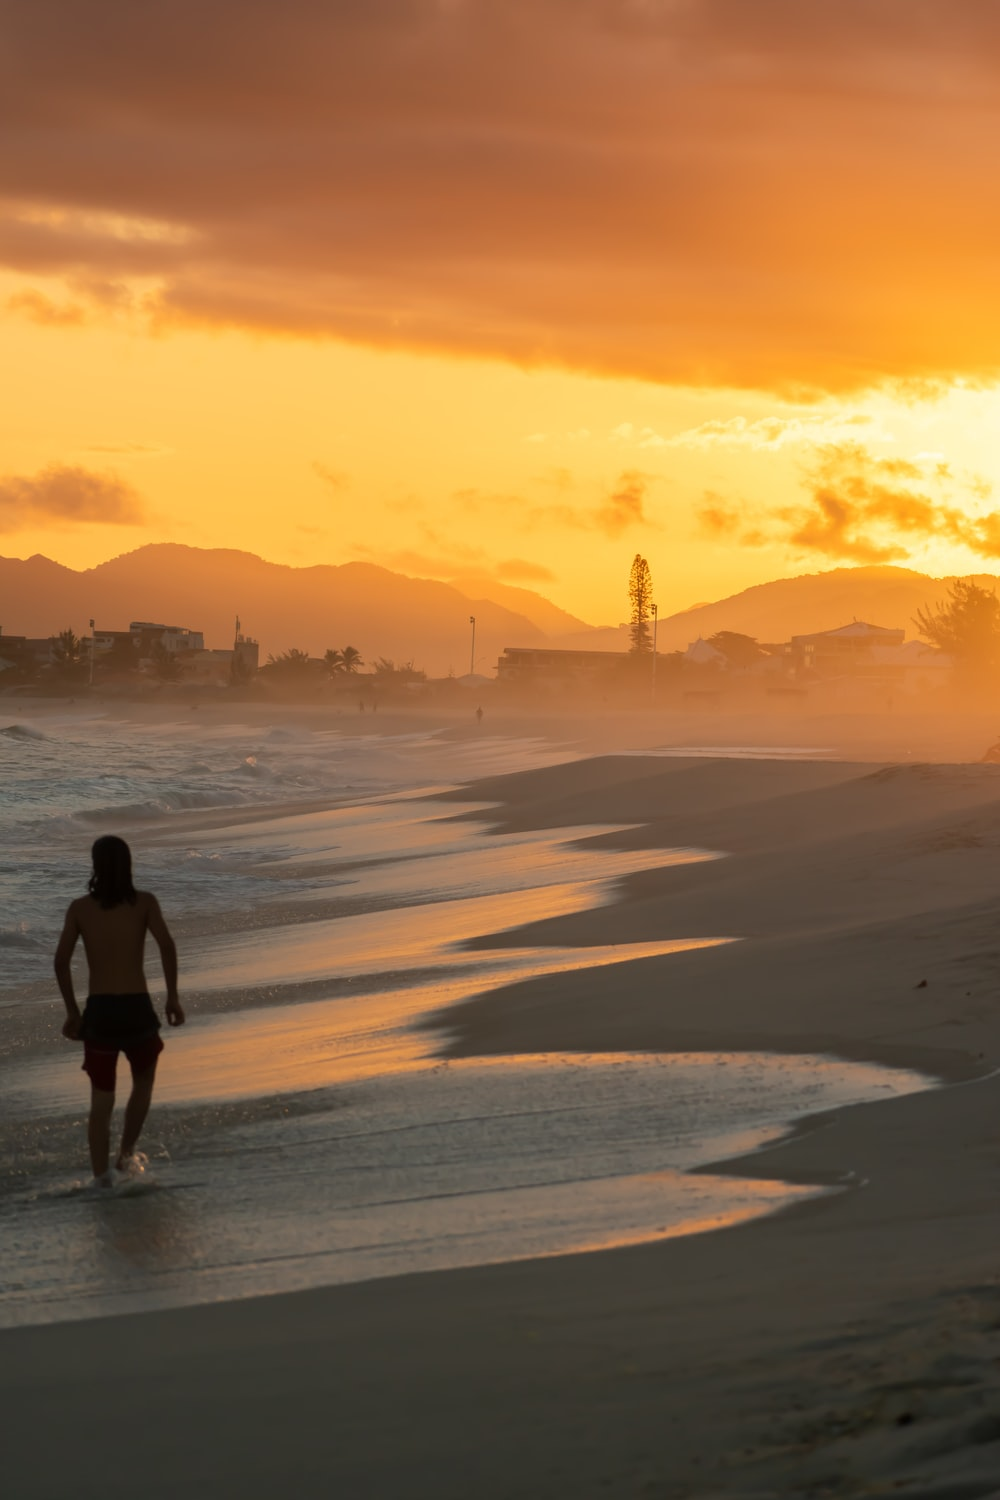 woman in black shirt walking on beach during sunset